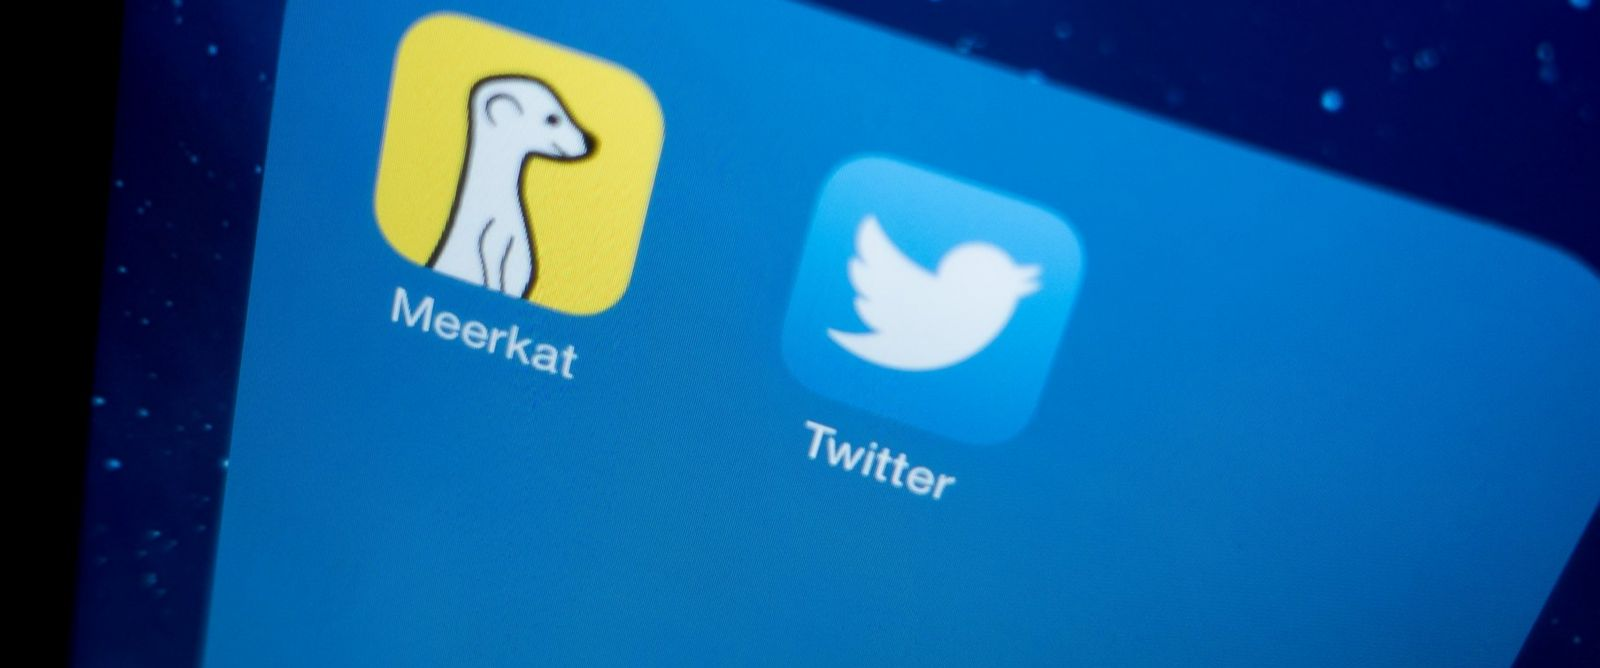 PHOTO: The icons of the live-streaming app Meerkat, left, and Twitter, right, can be seen on a smartphone on March 13, 2015.